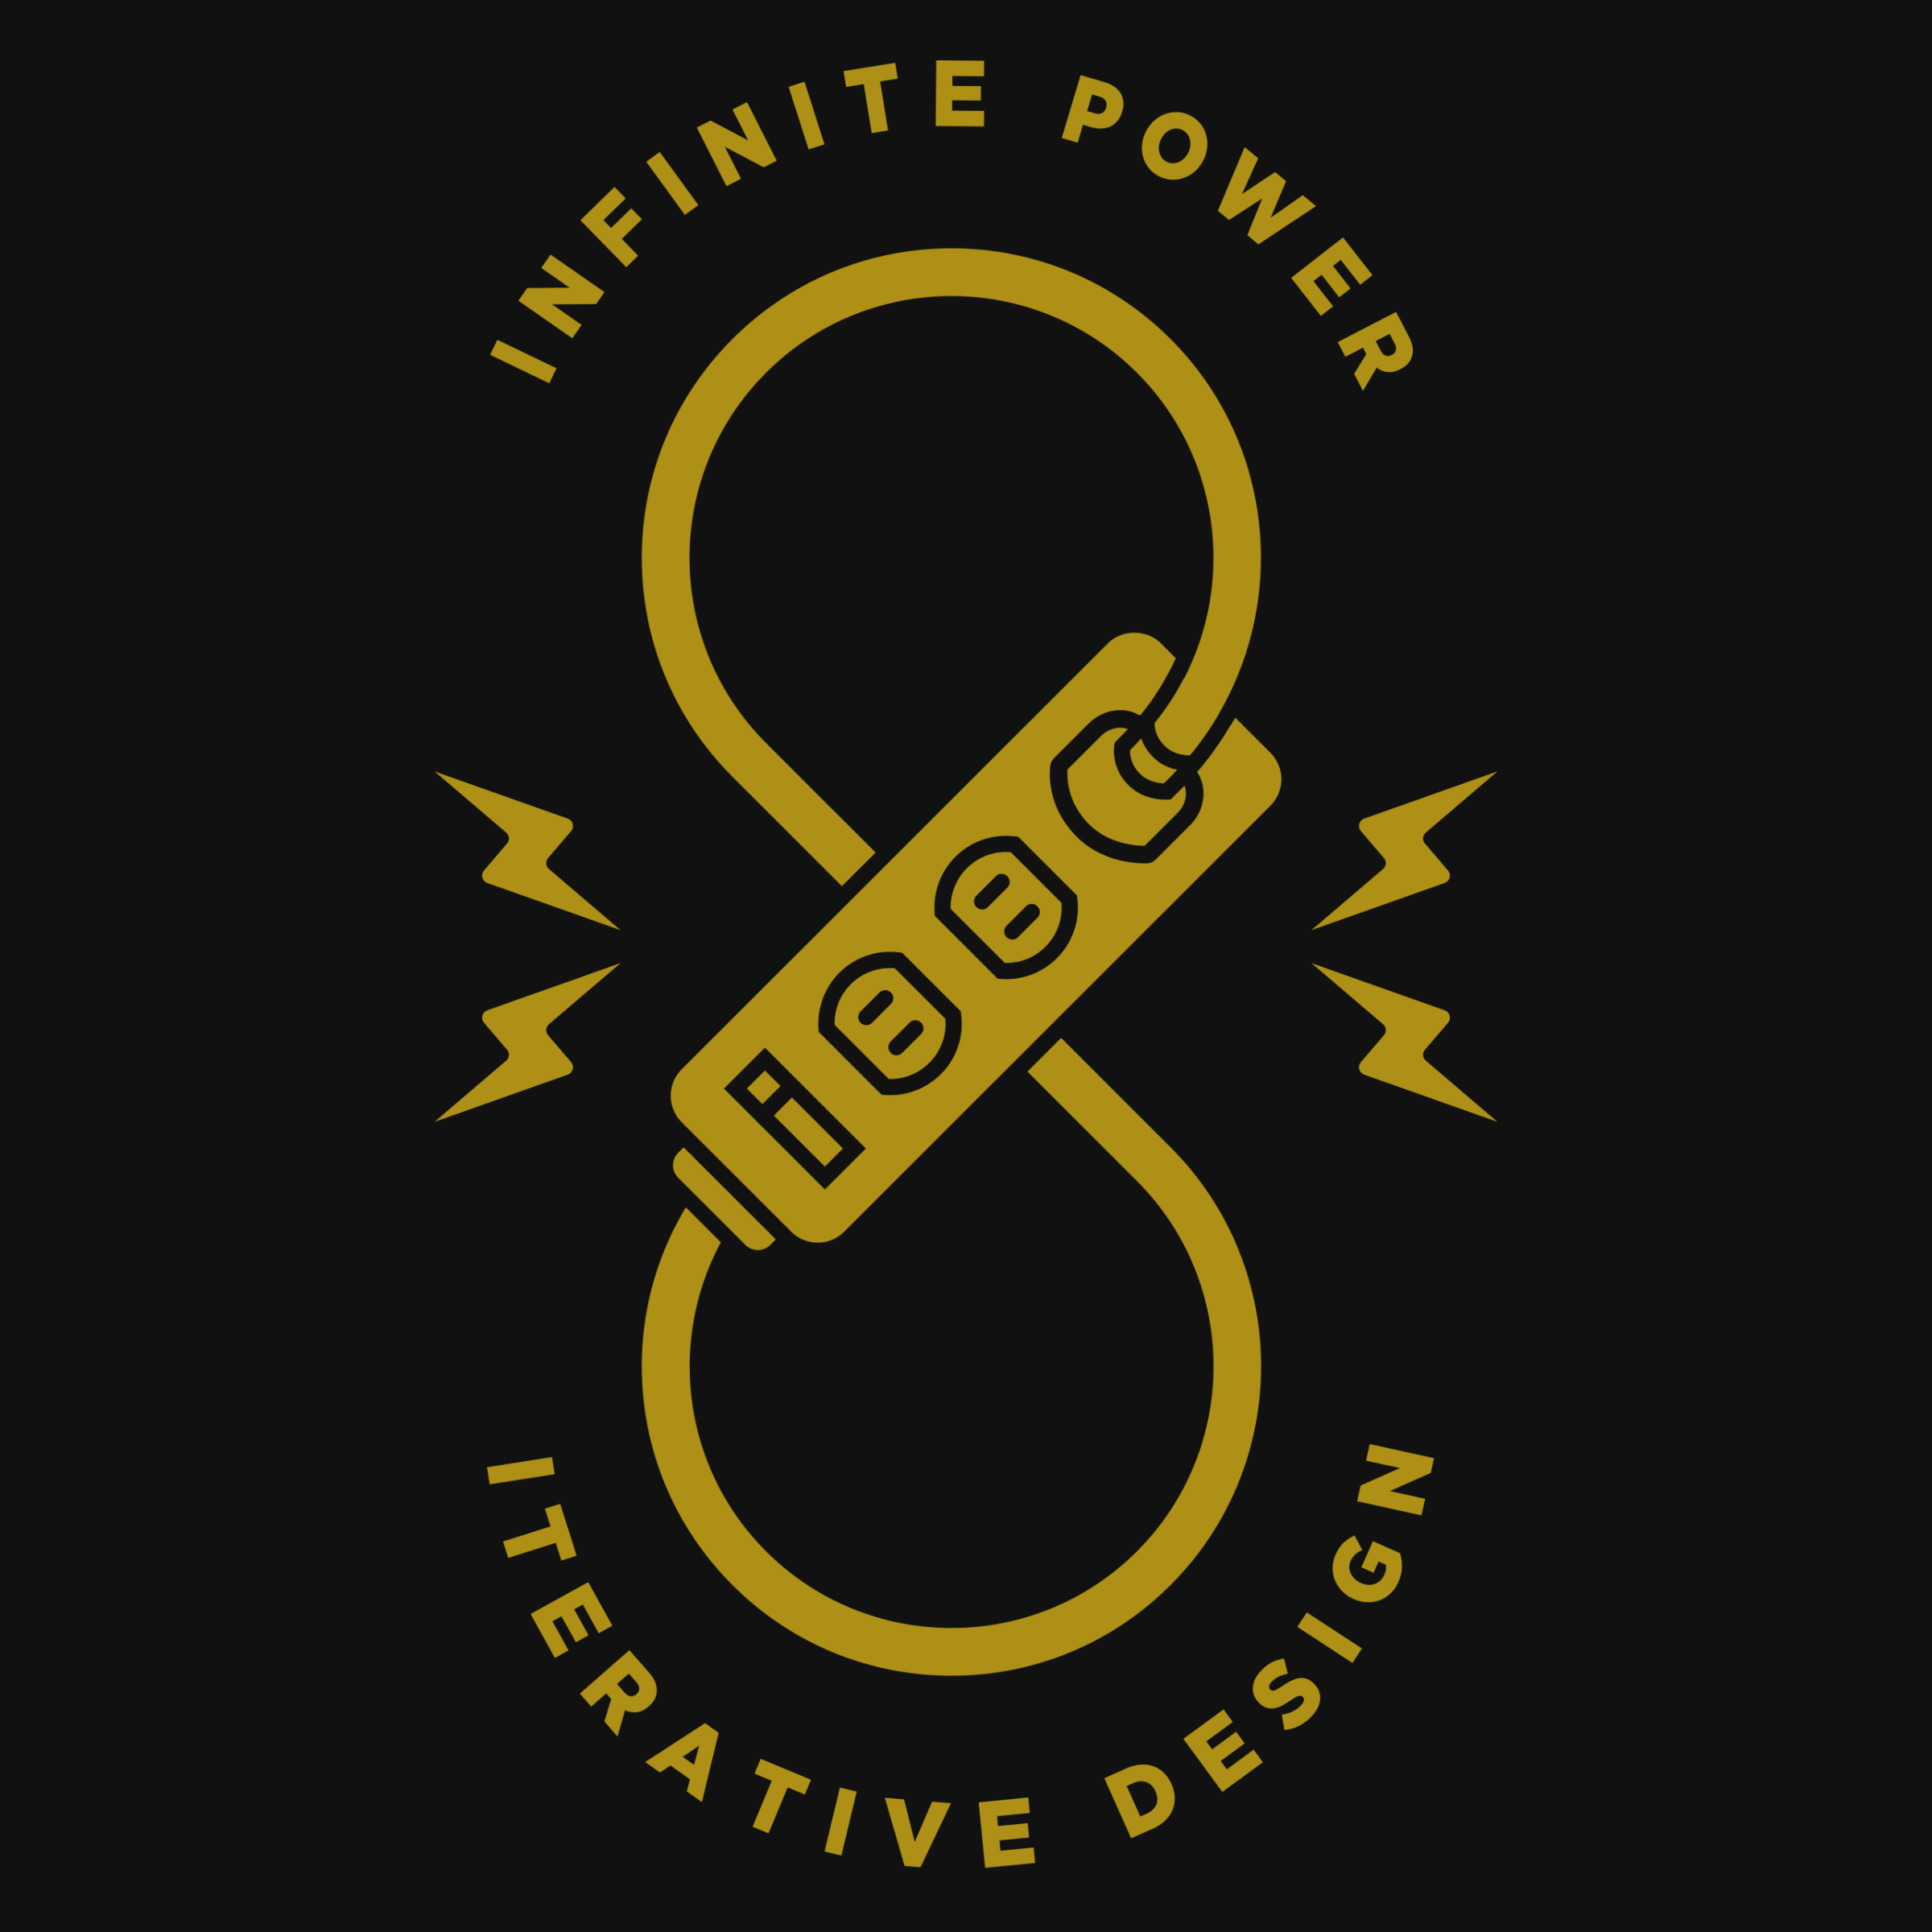 Infinite Power, Iterative Design Detail